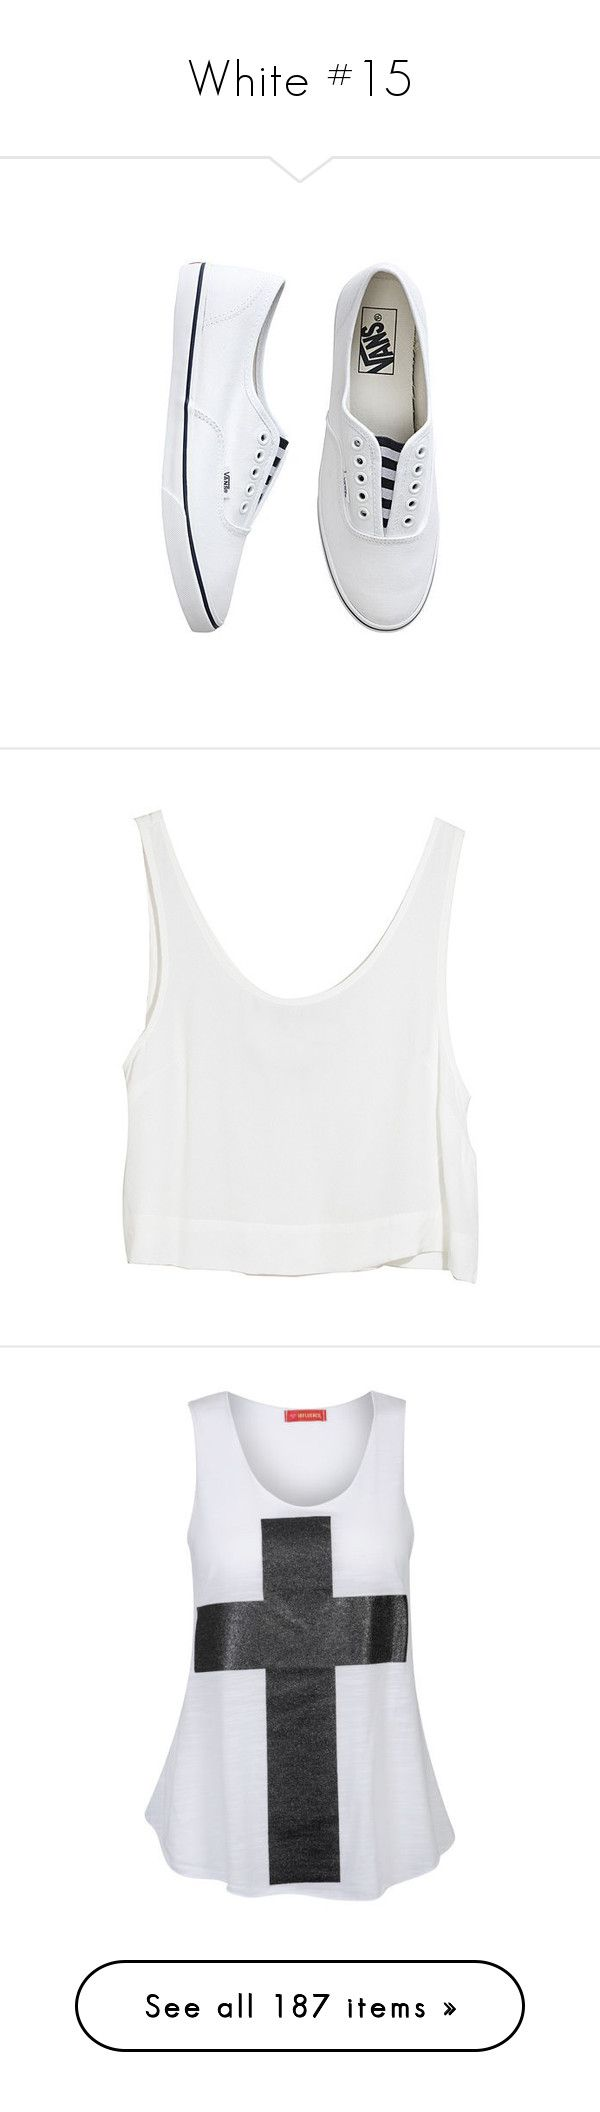 """""""White #15"""" by booknerd1326 ❤ liked on Polyvore featuring shoes, sneakers, vans, flats, zapatos, girlsfootwearshoes, vans shoes, slip on flats, treads shoes and slip on trainers"""